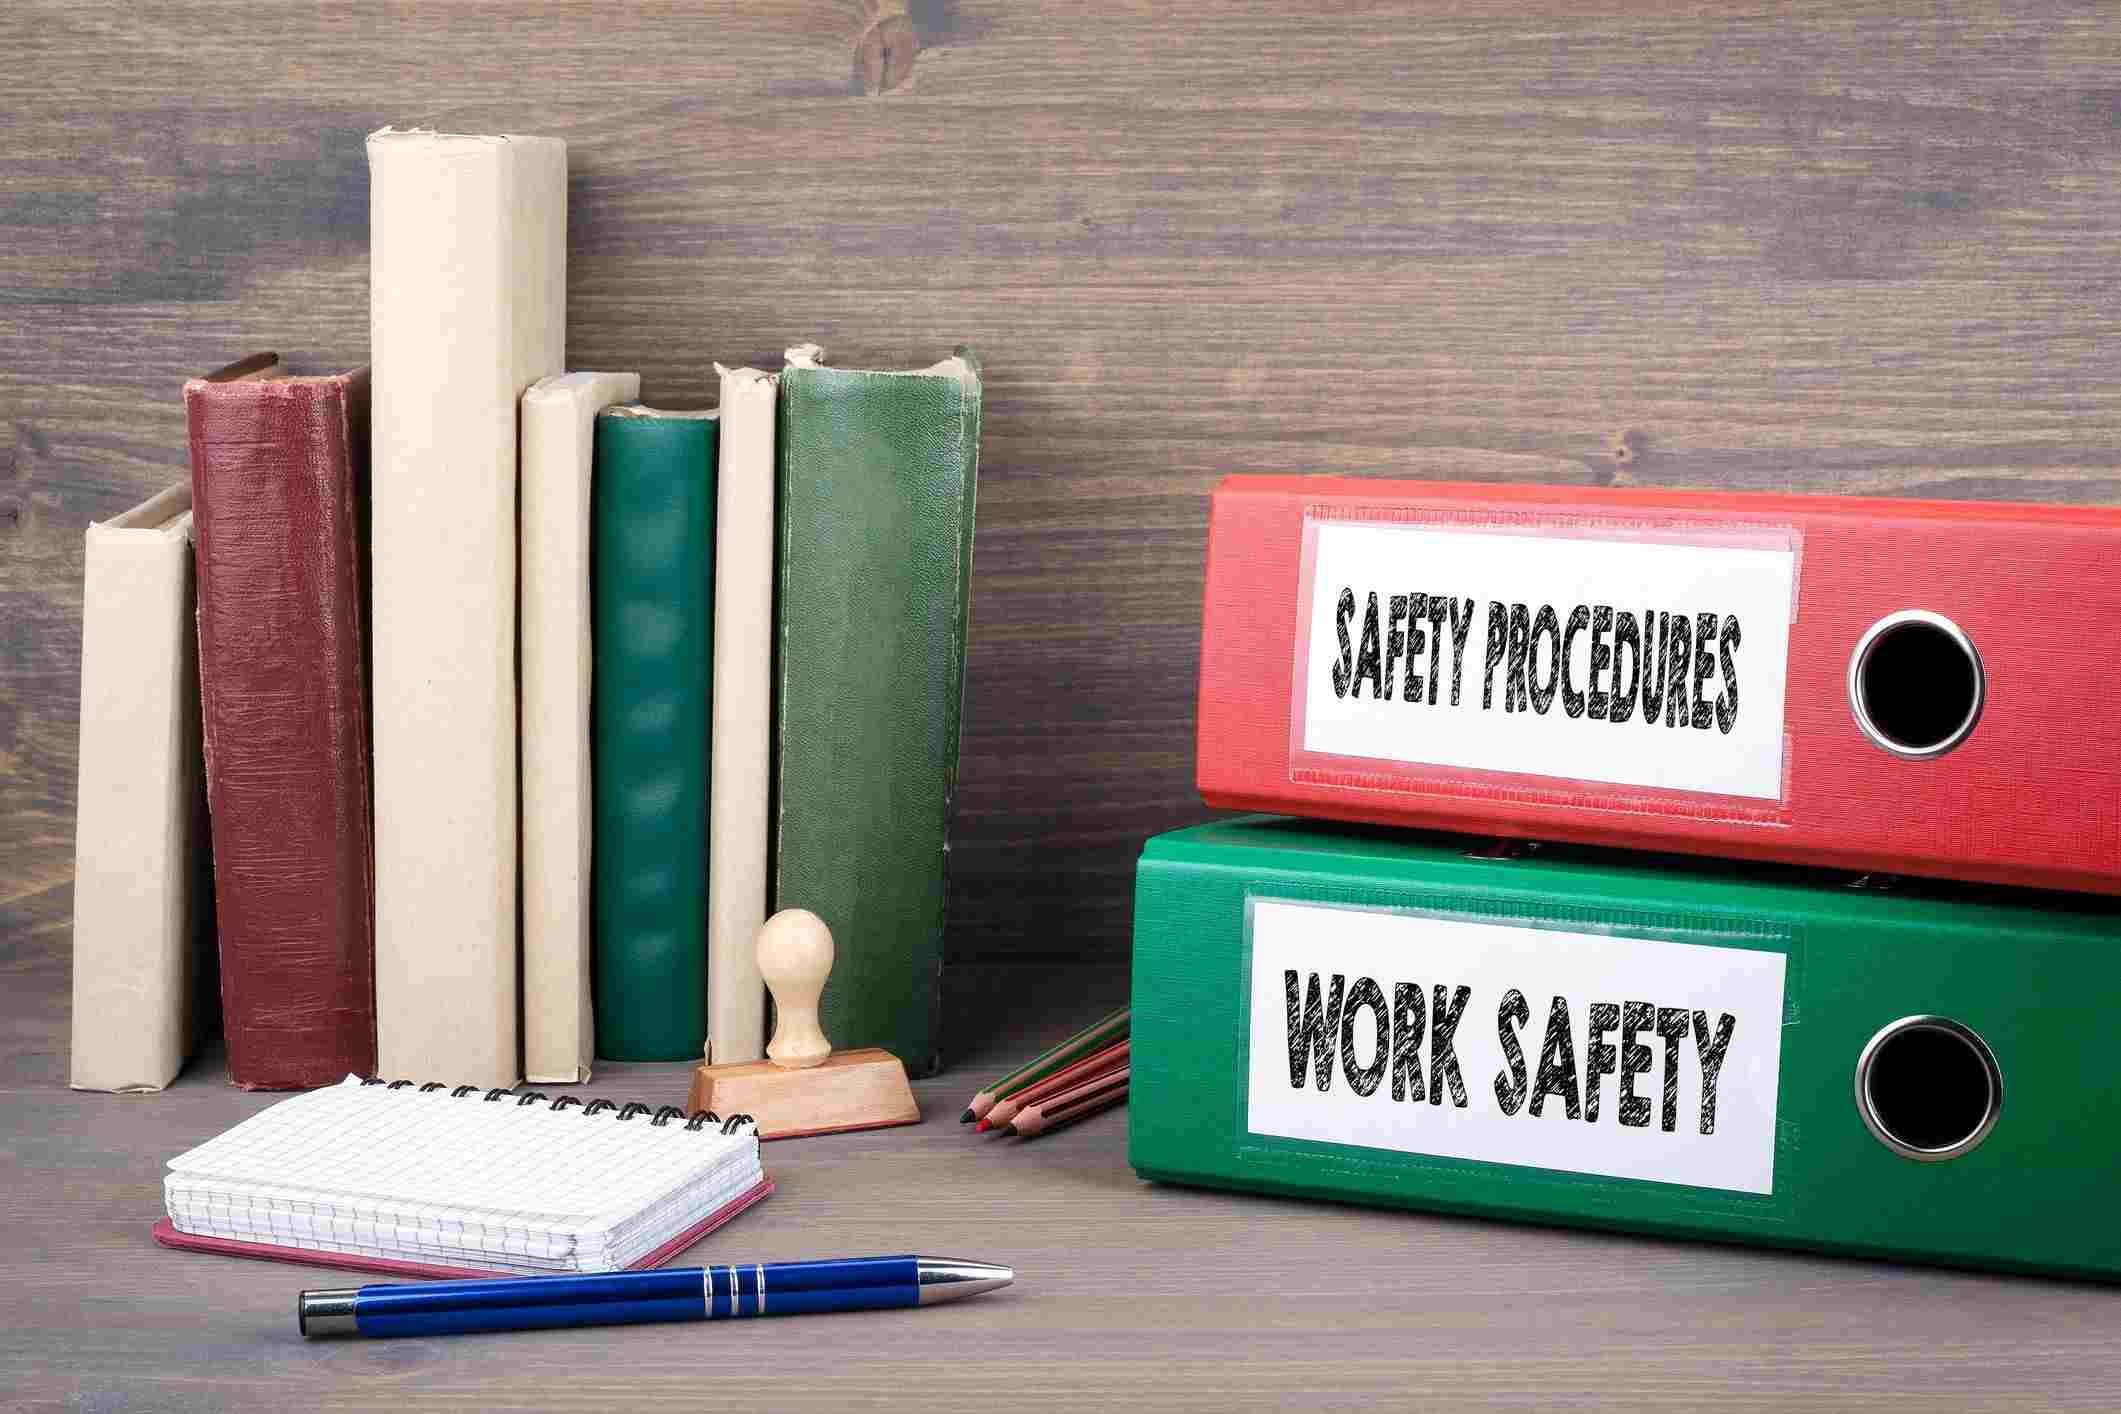 Workplace Safety and Safety Procedures